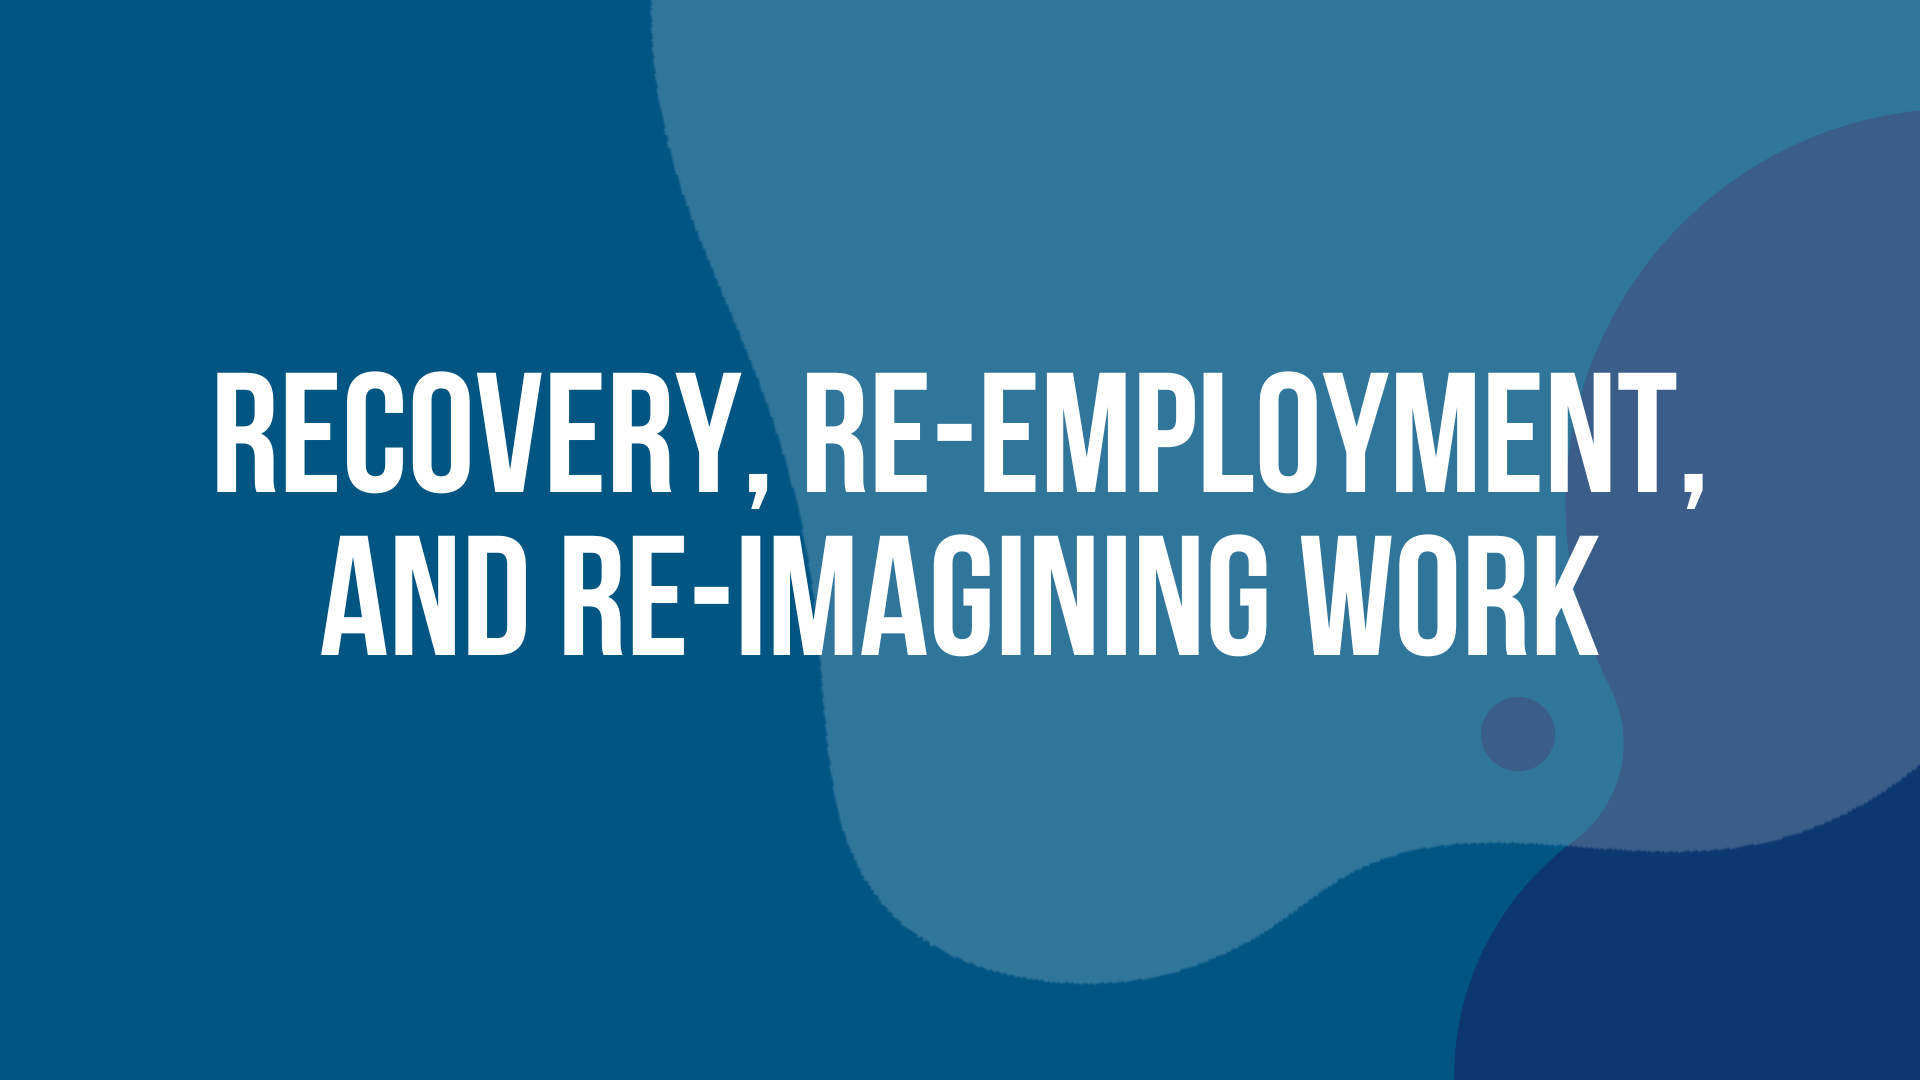 Recovery, Re-Employment, and Re-Imagining Work